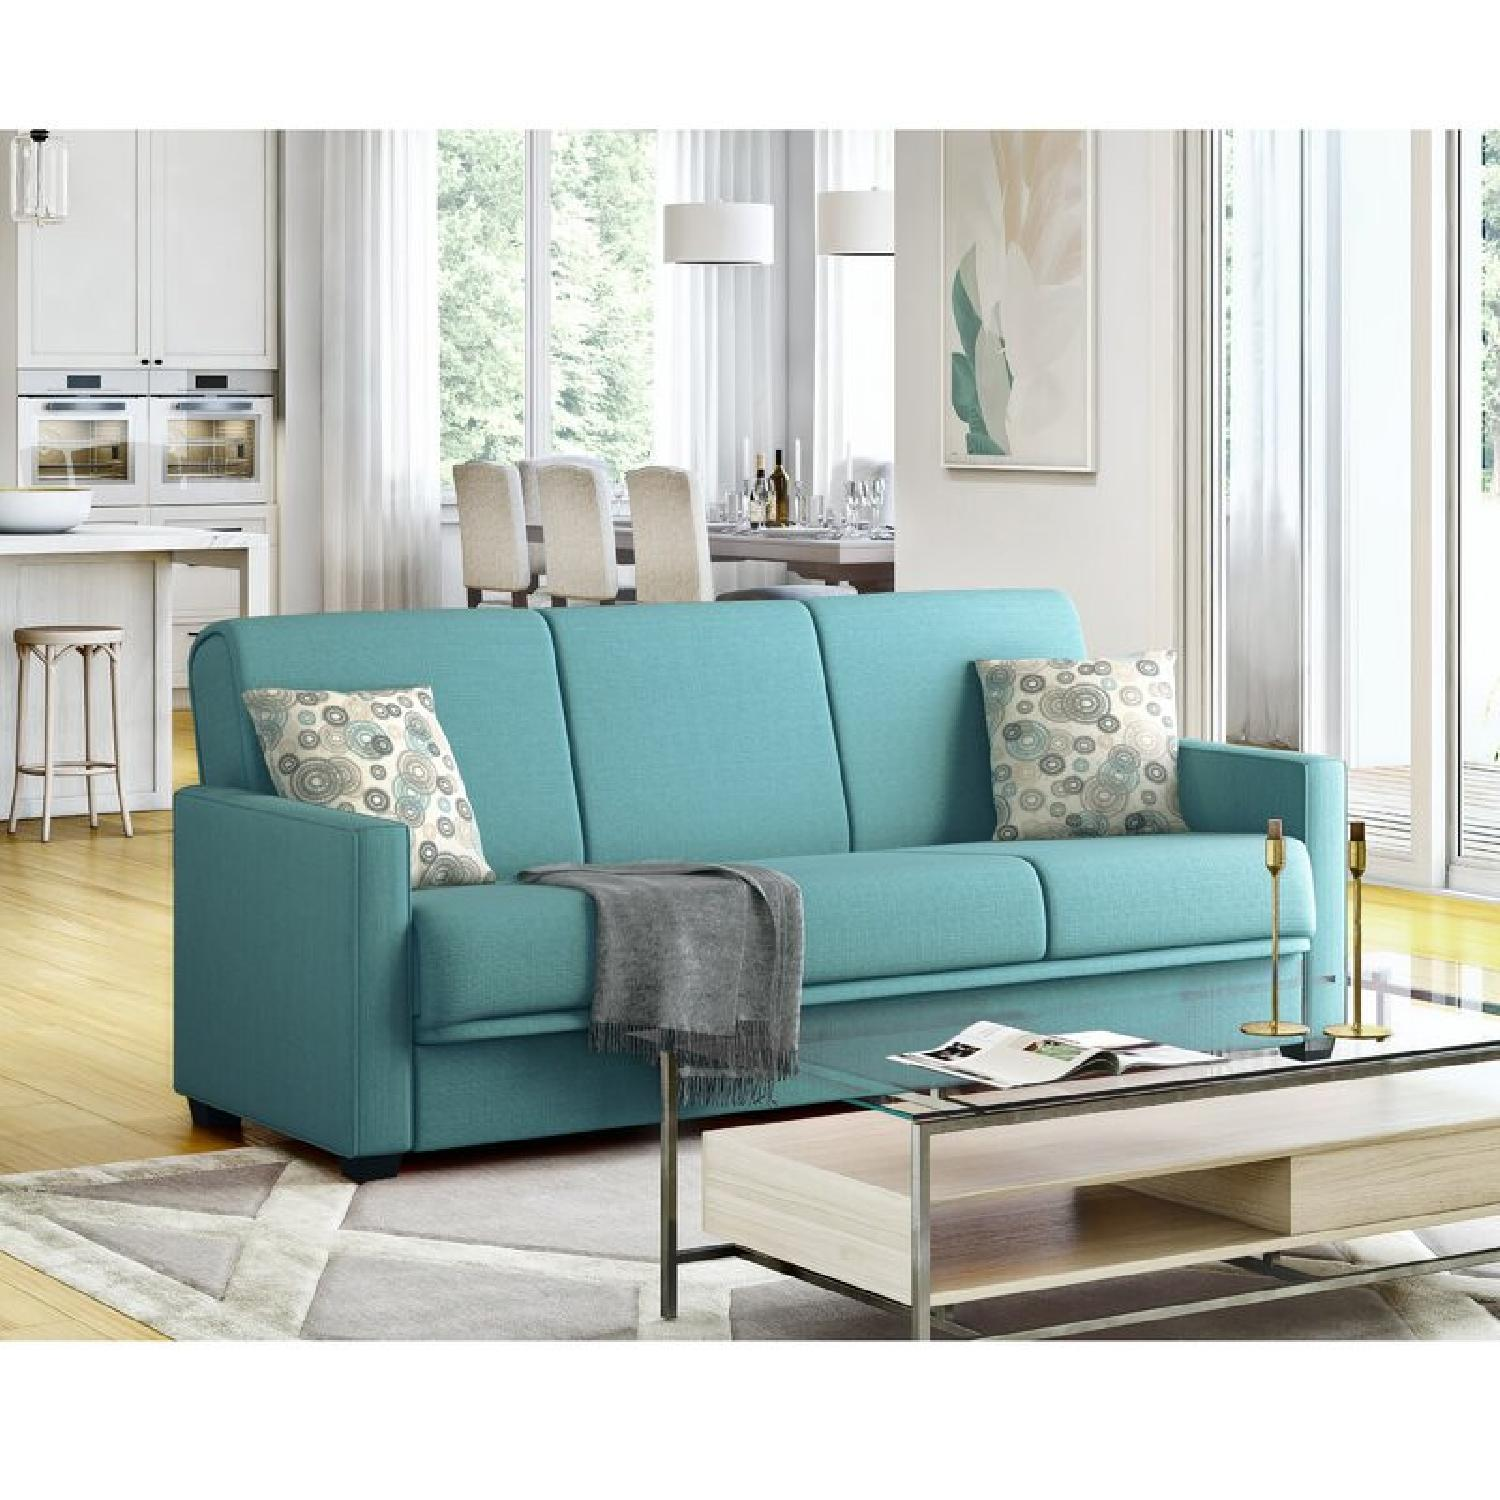 3 Seaters Sofa Bed - image-4